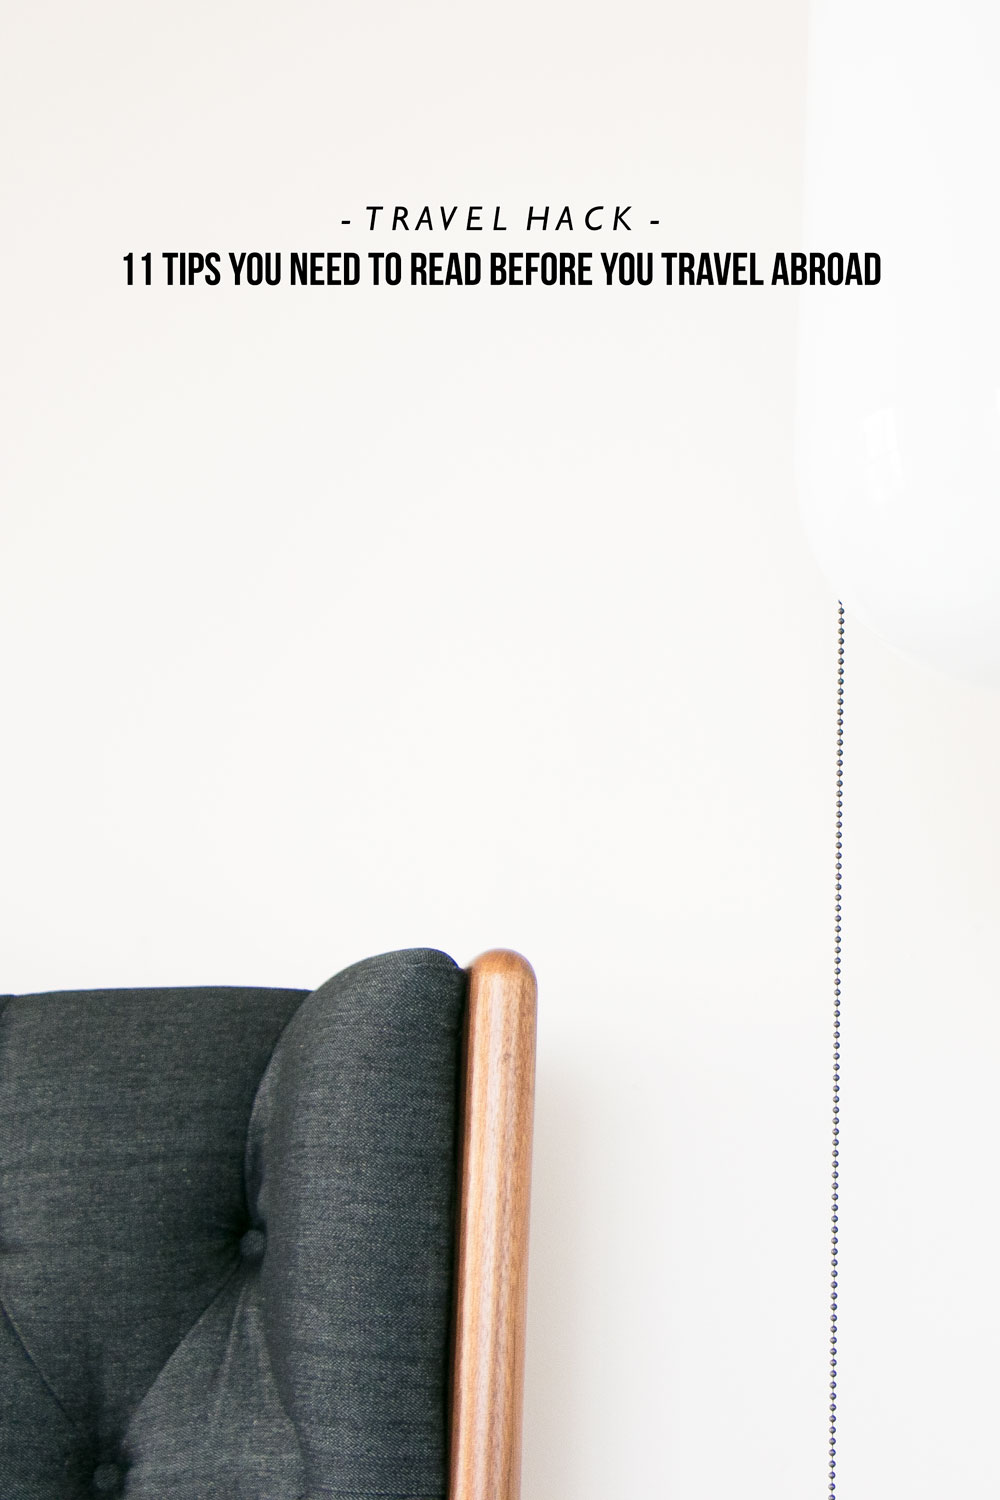 11 Tips You Need To Read Before You Travel Abroad